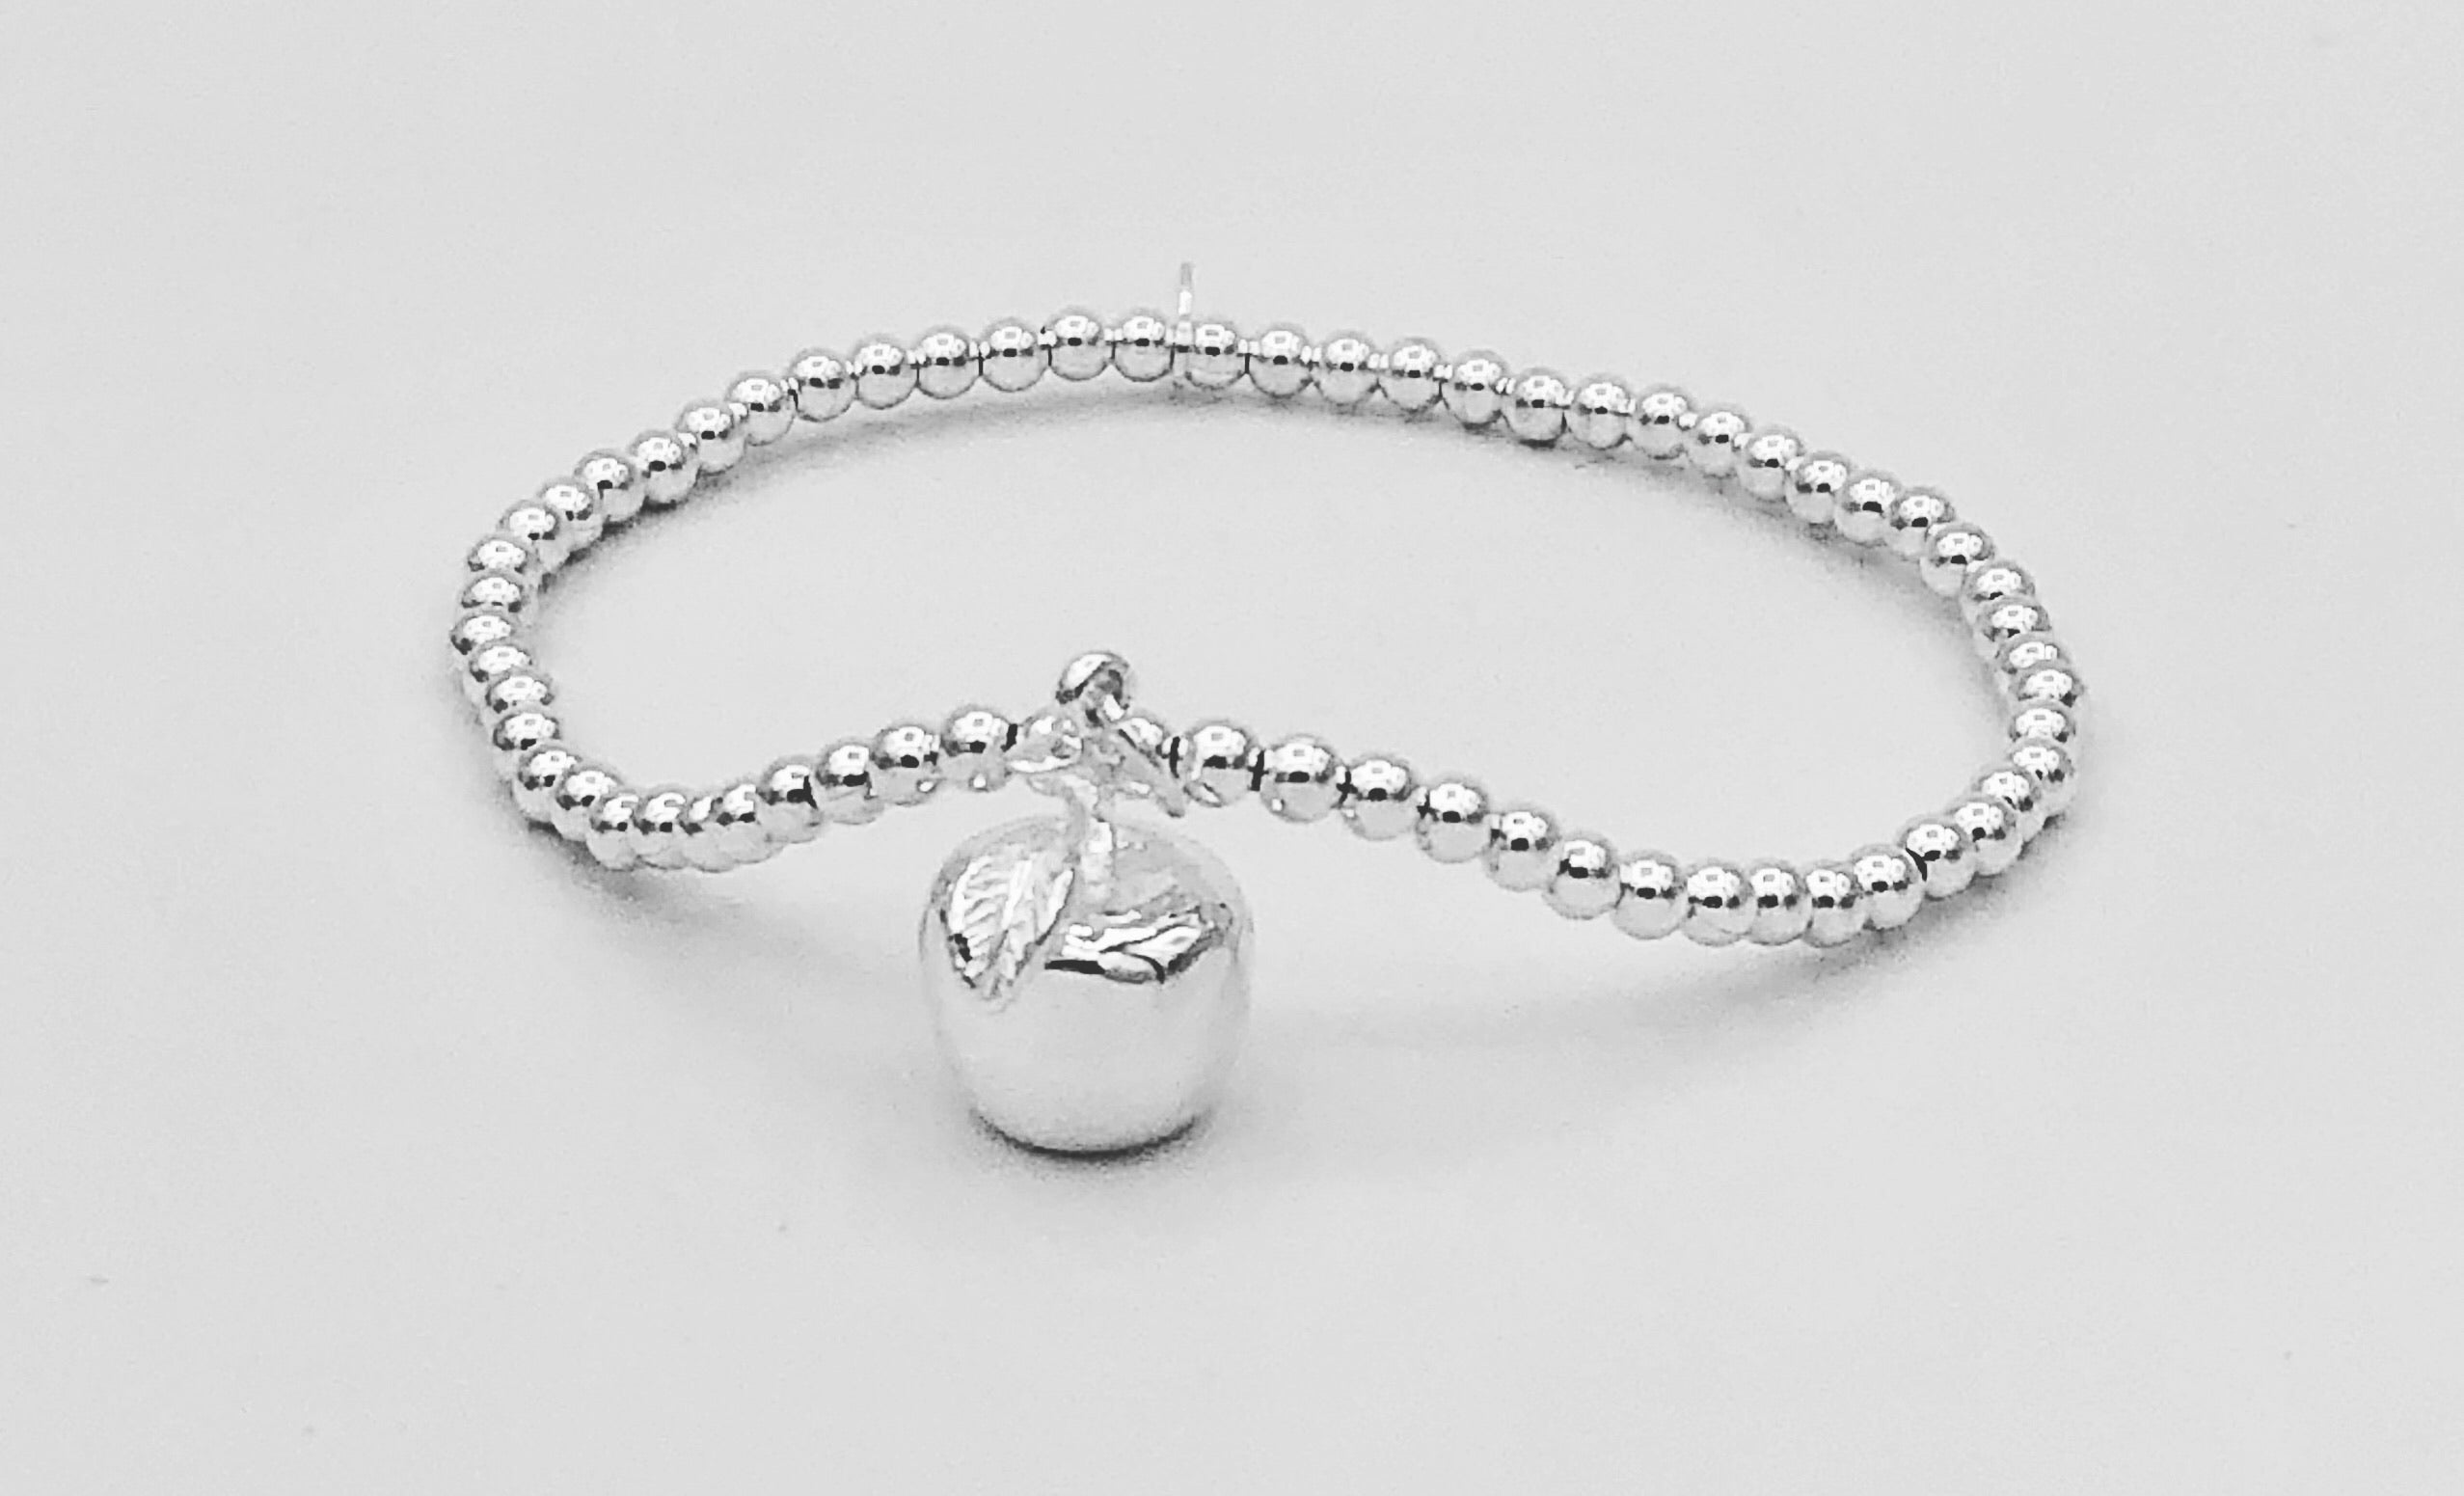 Penelope Apple Stretchable Bracelet